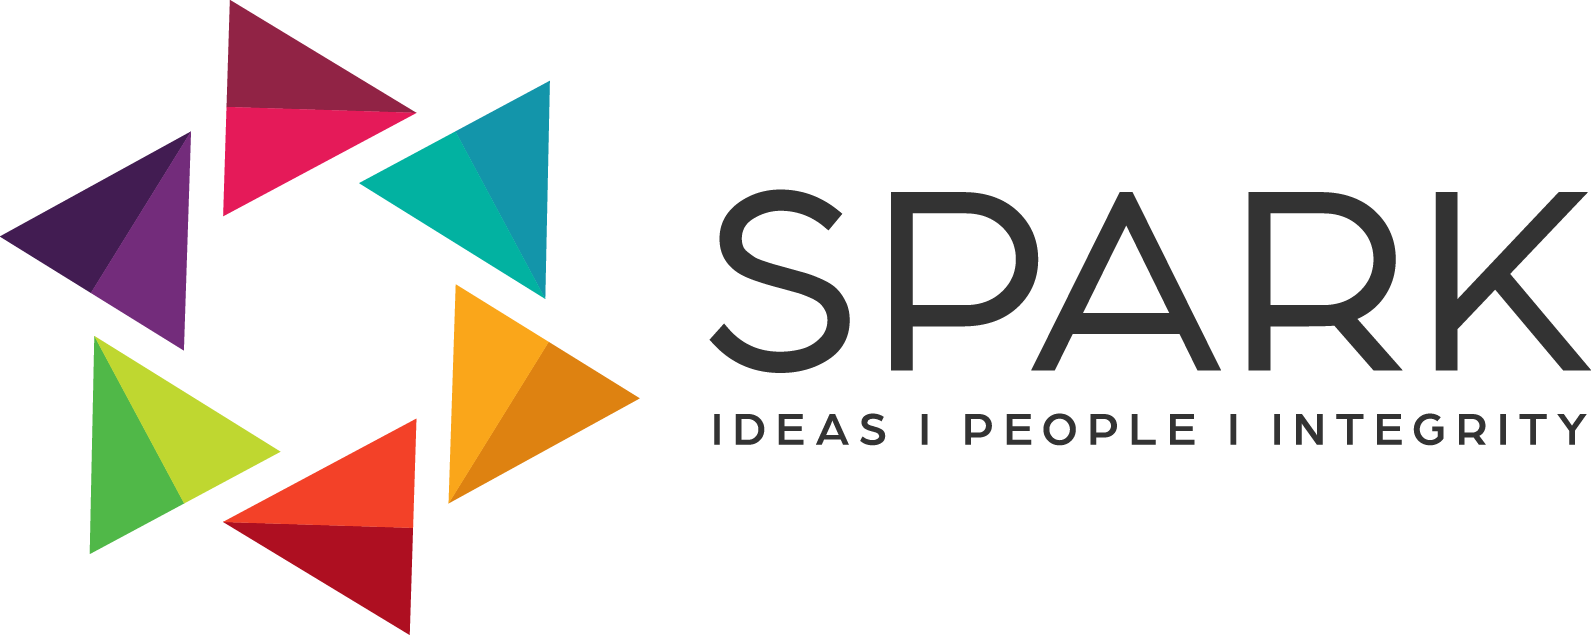 Consult With Spark